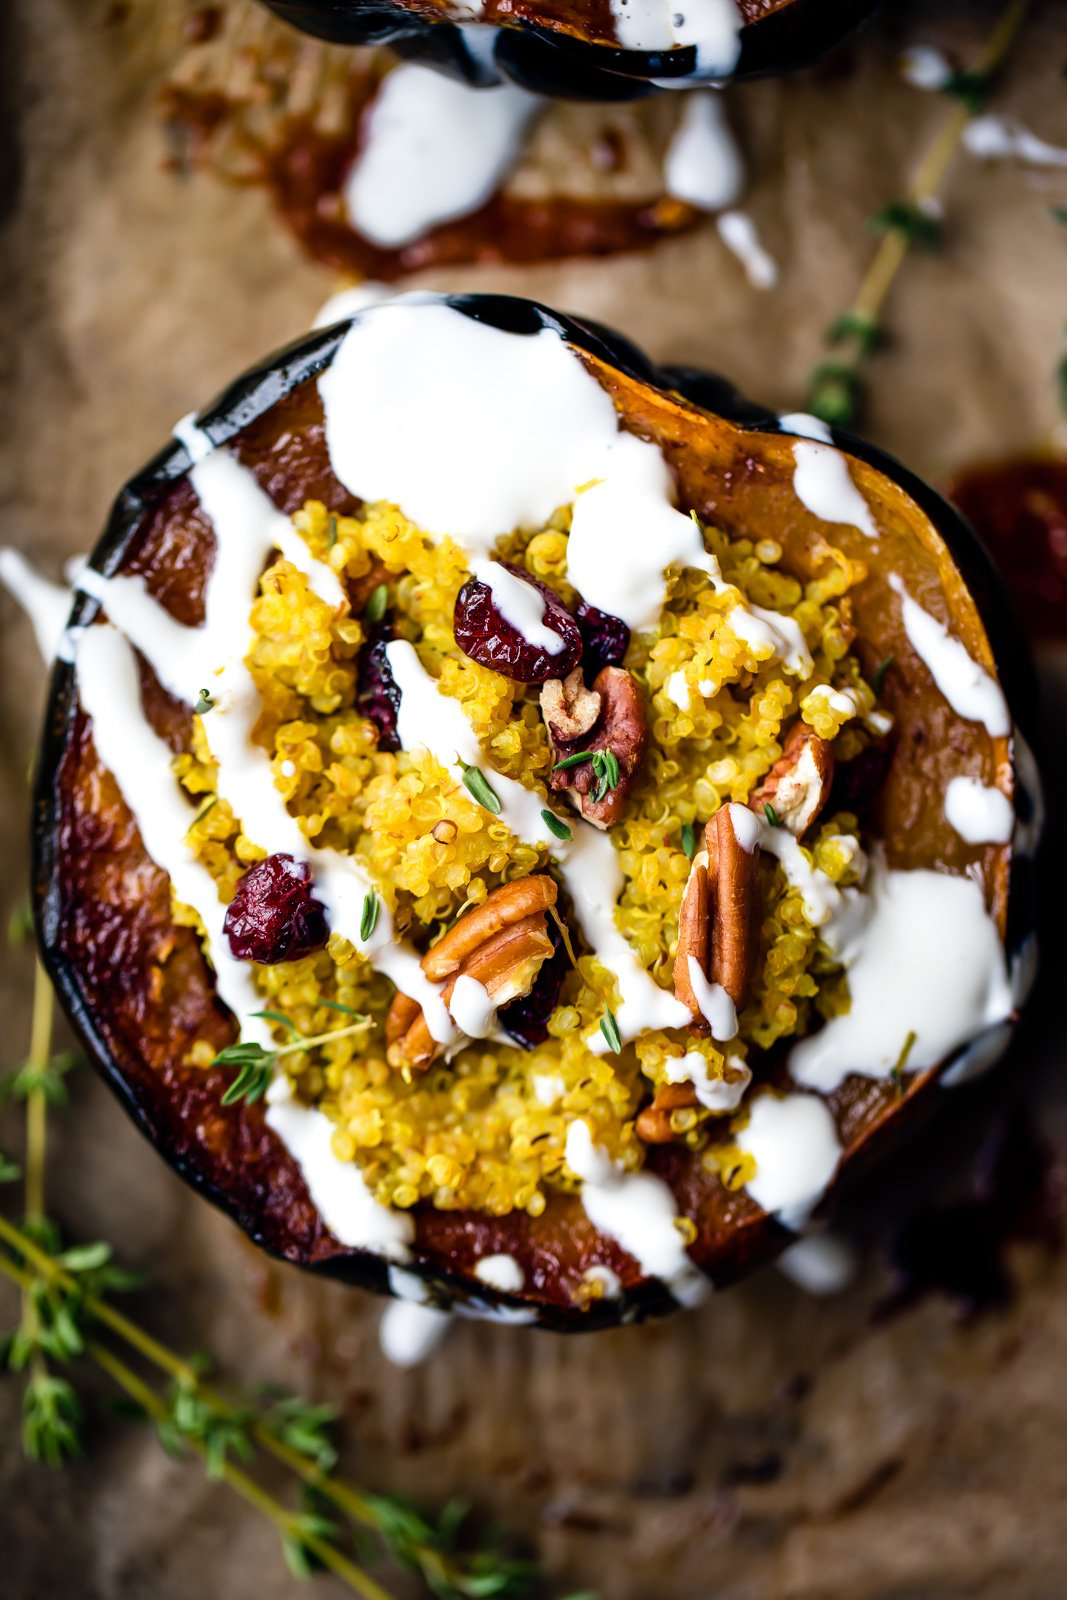 Stuffed acorn squash with cranberry, pecans and quinoa then drizzled with a simple goat cheese crema. Perfect for vegetarians at Thanksgiving, or anytime you're looking for a healthy plant based meal or side.